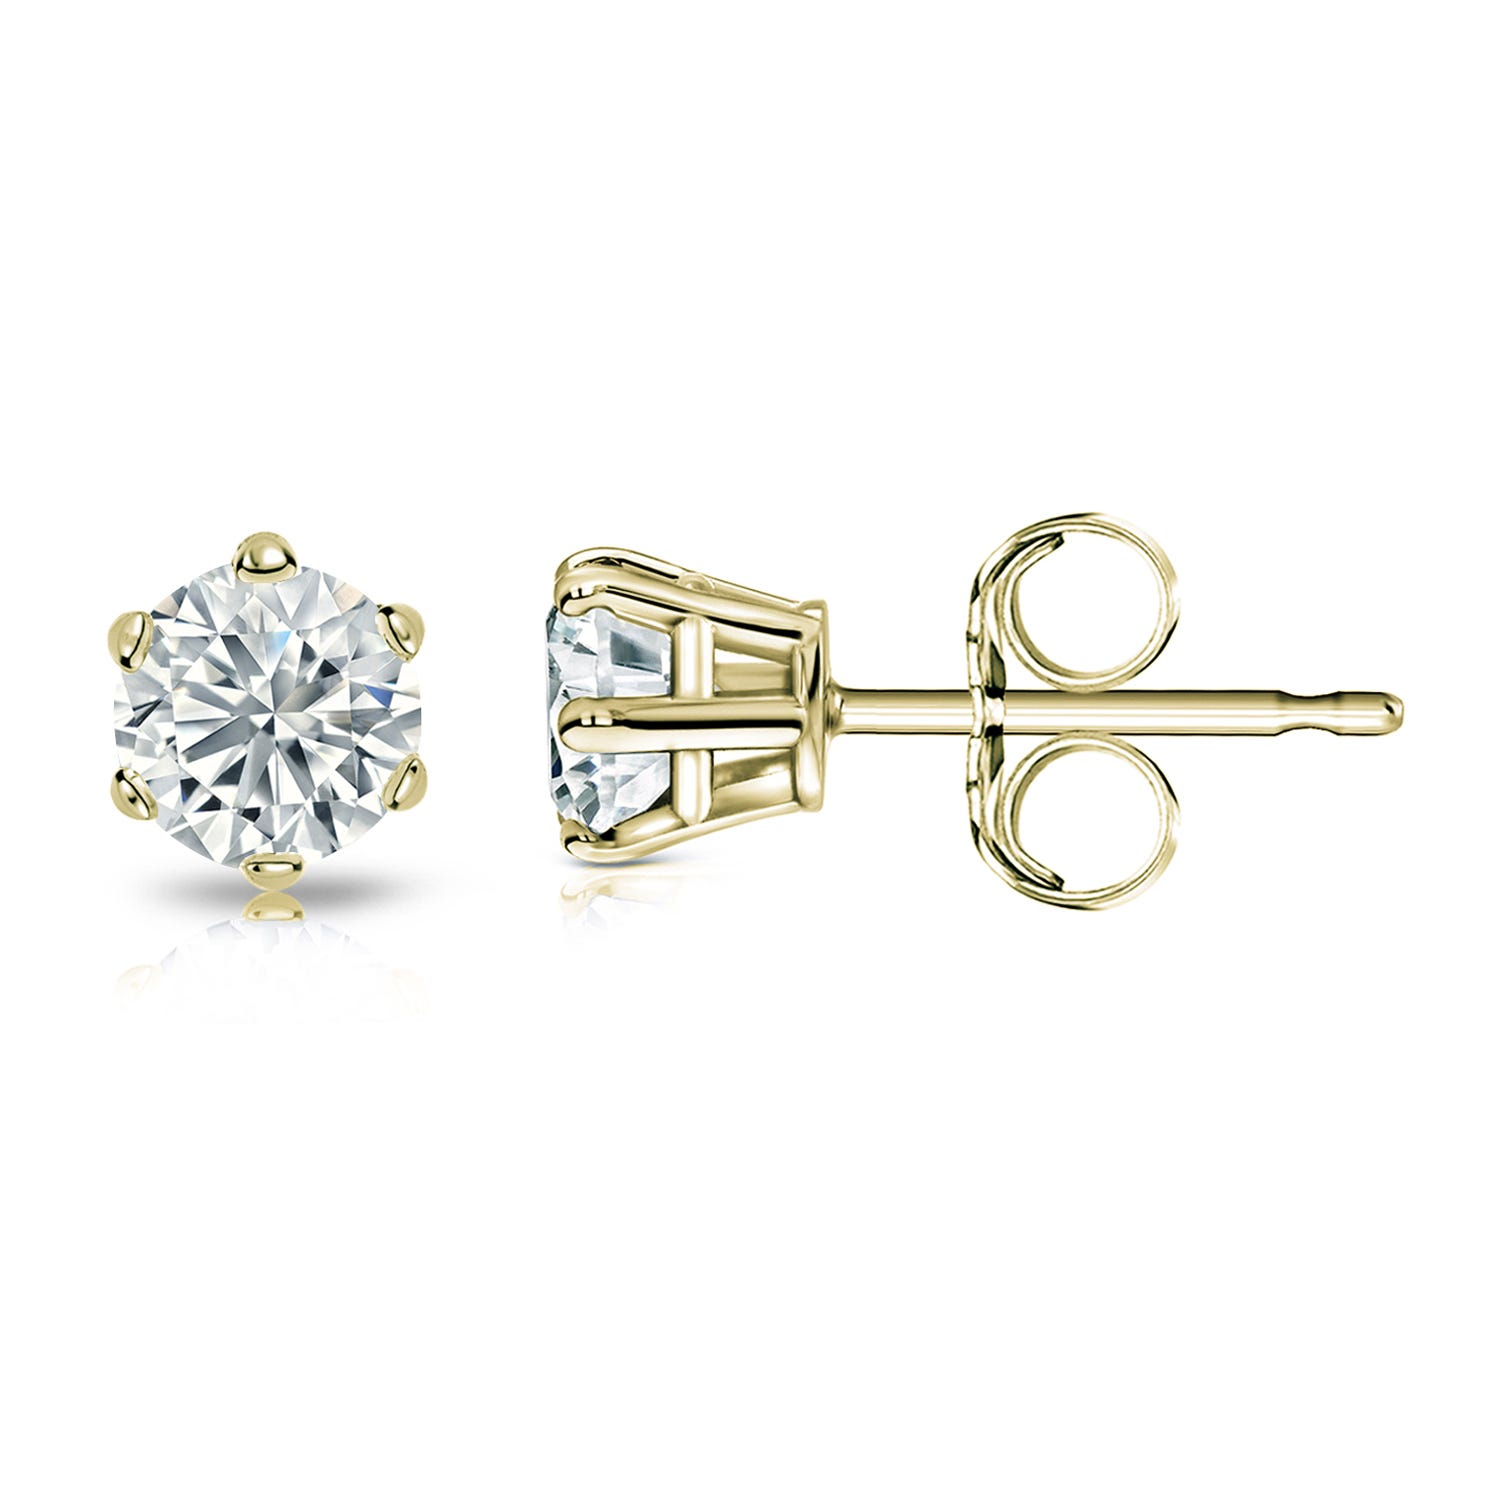 Round Diamond 5/8ctw. (IJ-I1) Solitaire Stud 6-Prong Earrings in 14K Yellow Gold